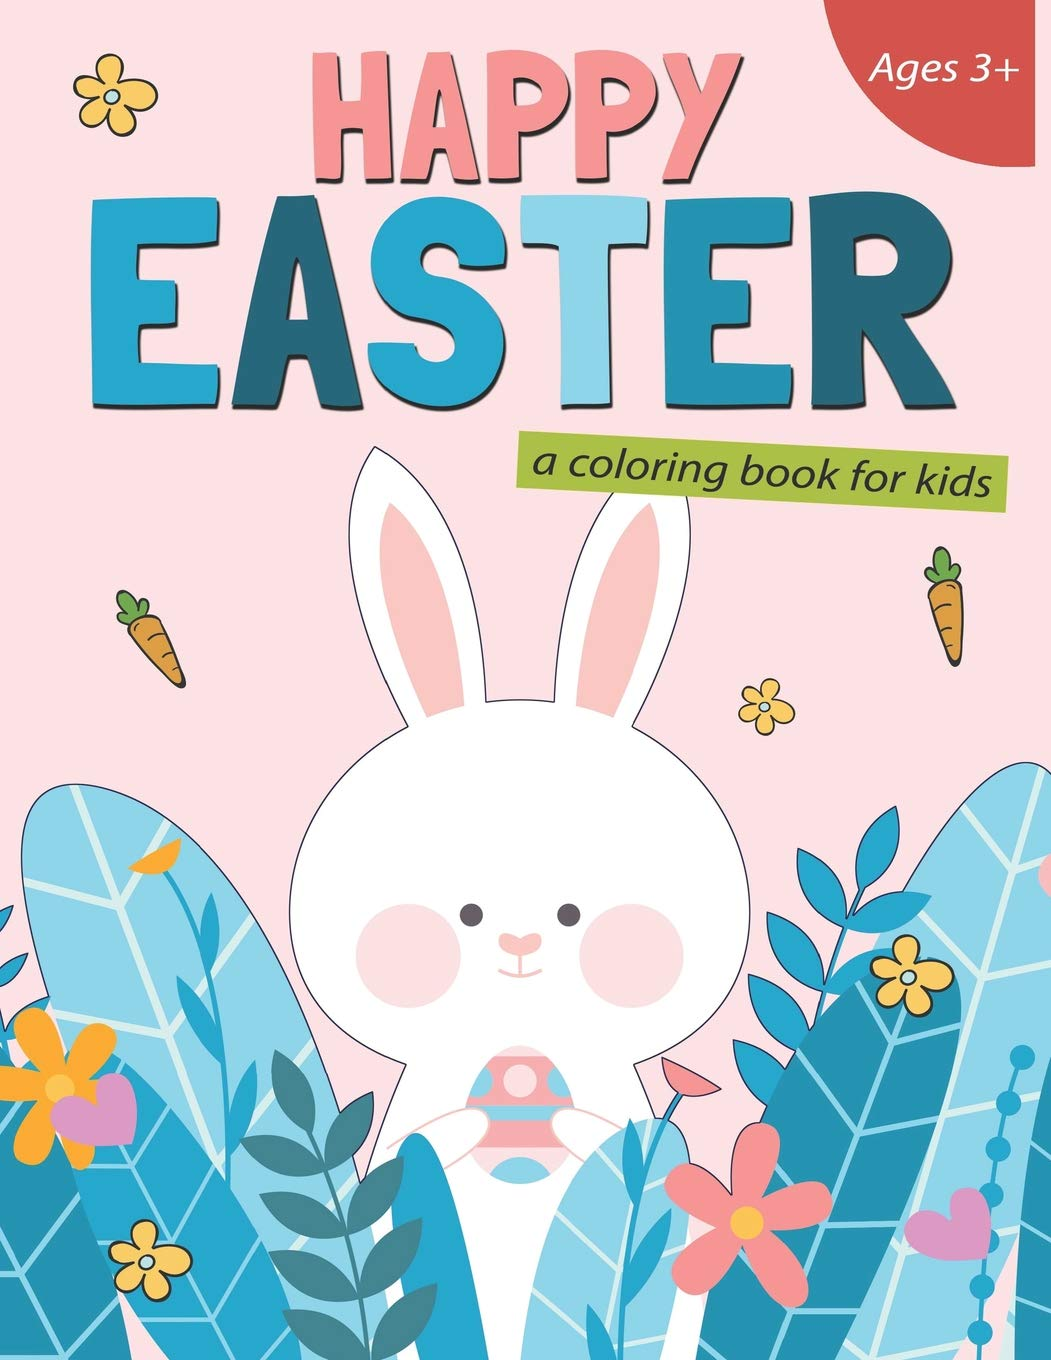 Happy Easter A Coloring Book For Kids 50 Easter Coloring Pages For Kids Education K Imagine 9781798700877 Amazon Com Books